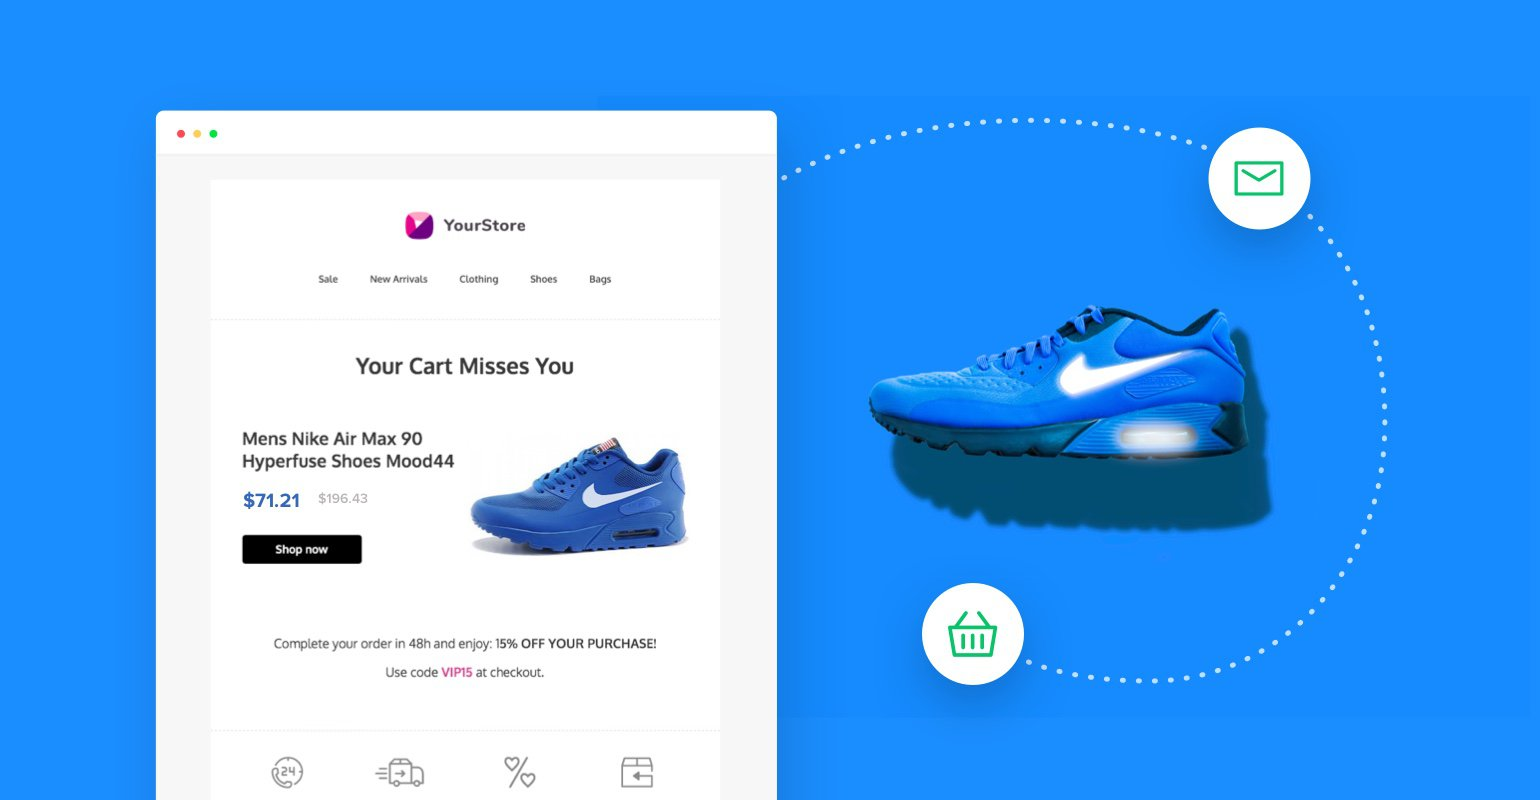 Abandoned cart emails for Shopify and WooCommerce are live!